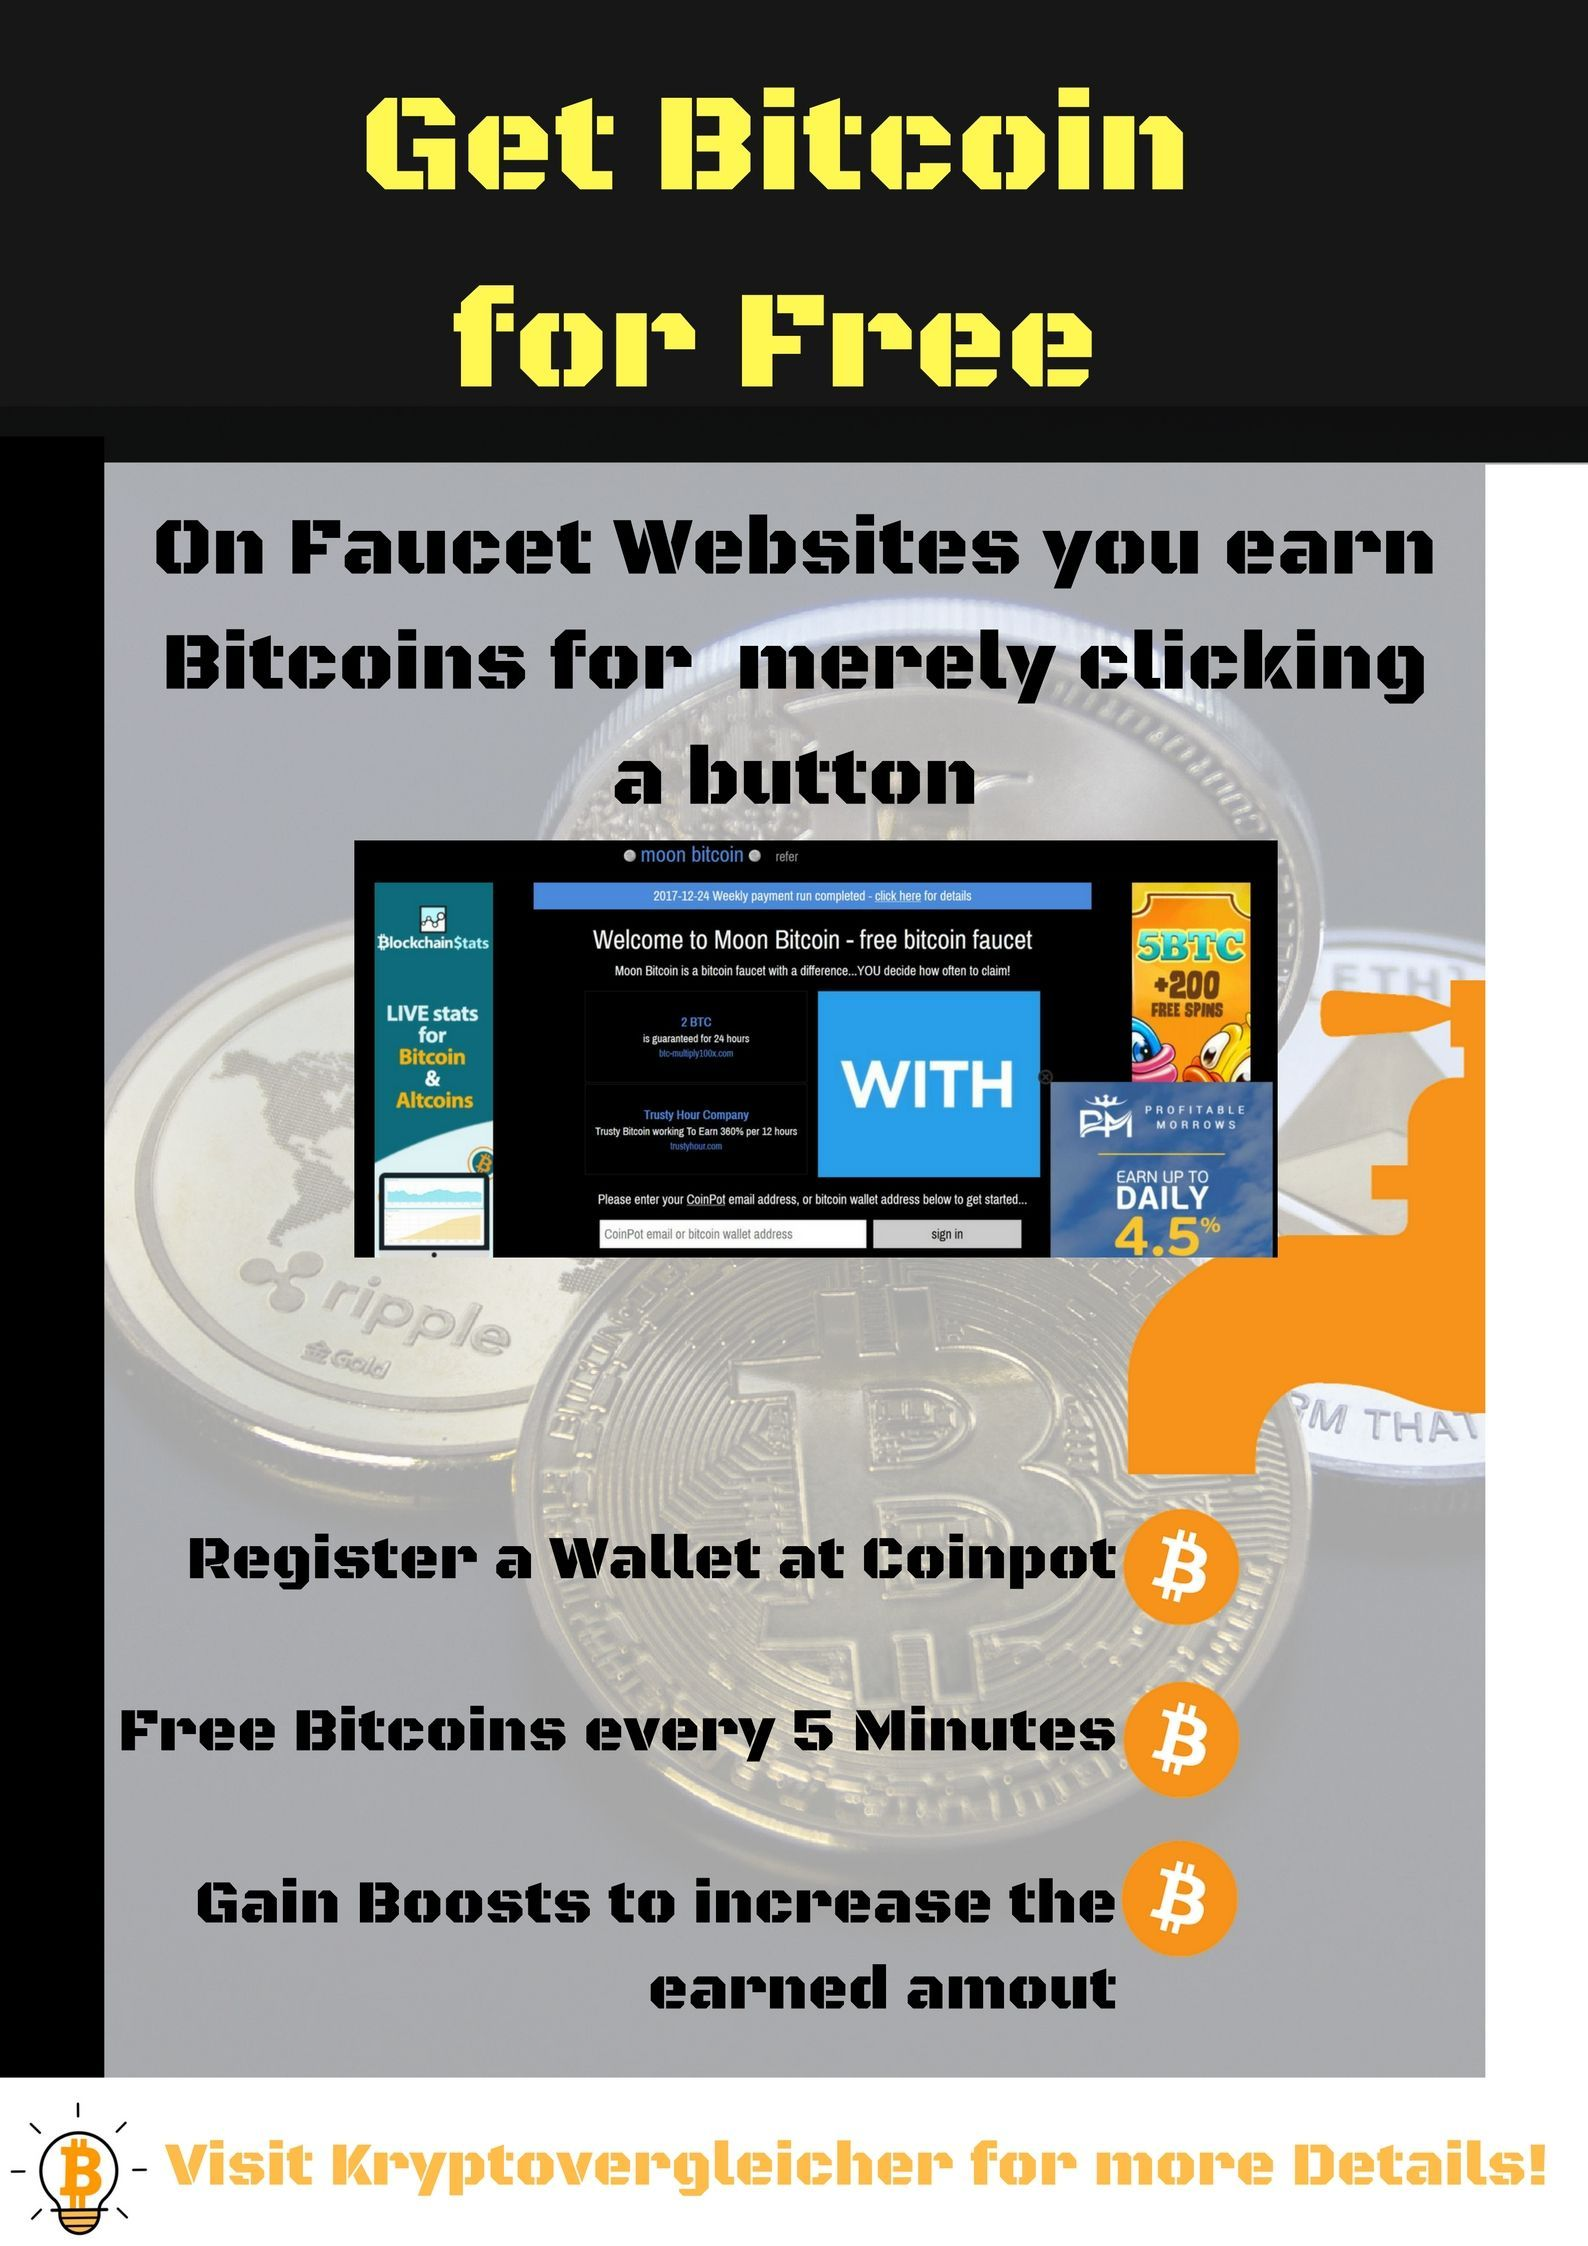 There are websites where you can get Bitcoin for simply clicking and